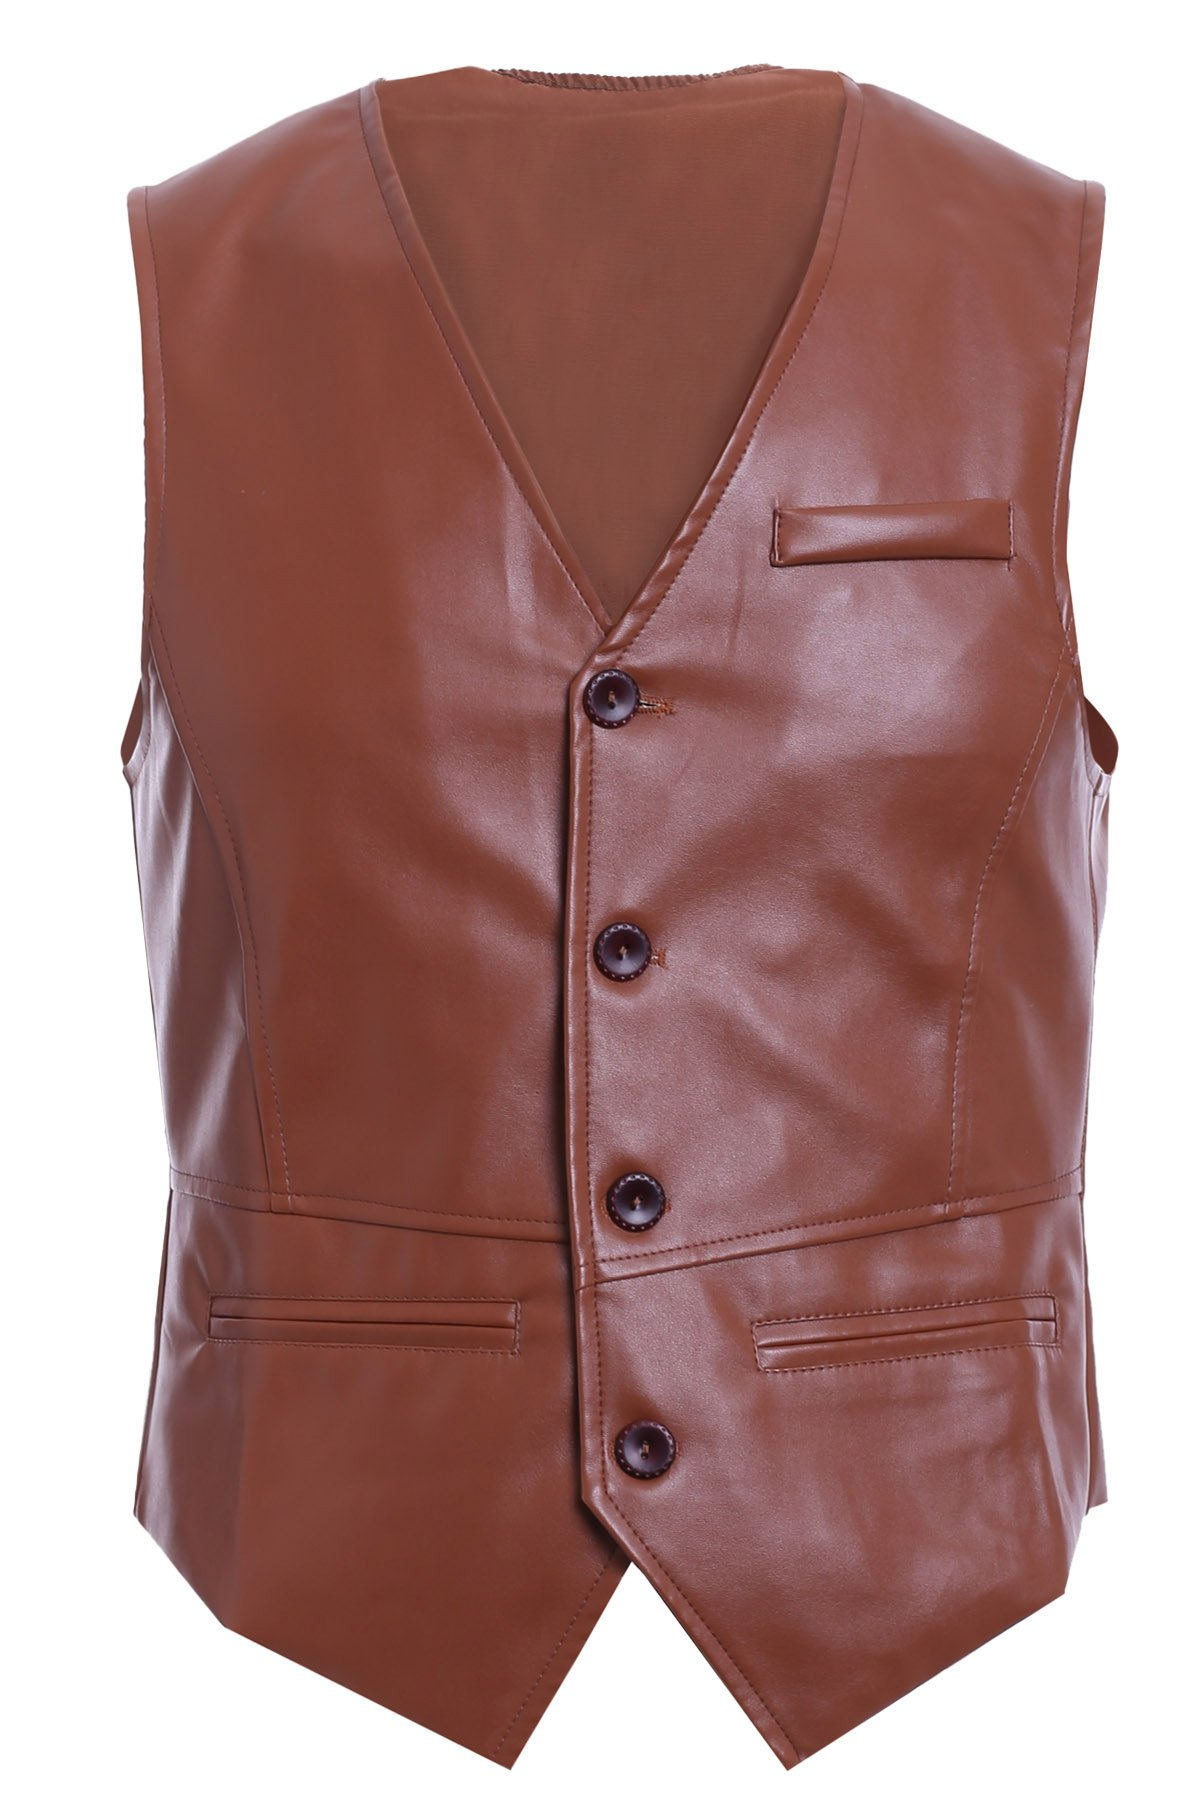 Solid Color Single-Breasted V-Neck Men's PU Leather Waistcoat - BROWN XL